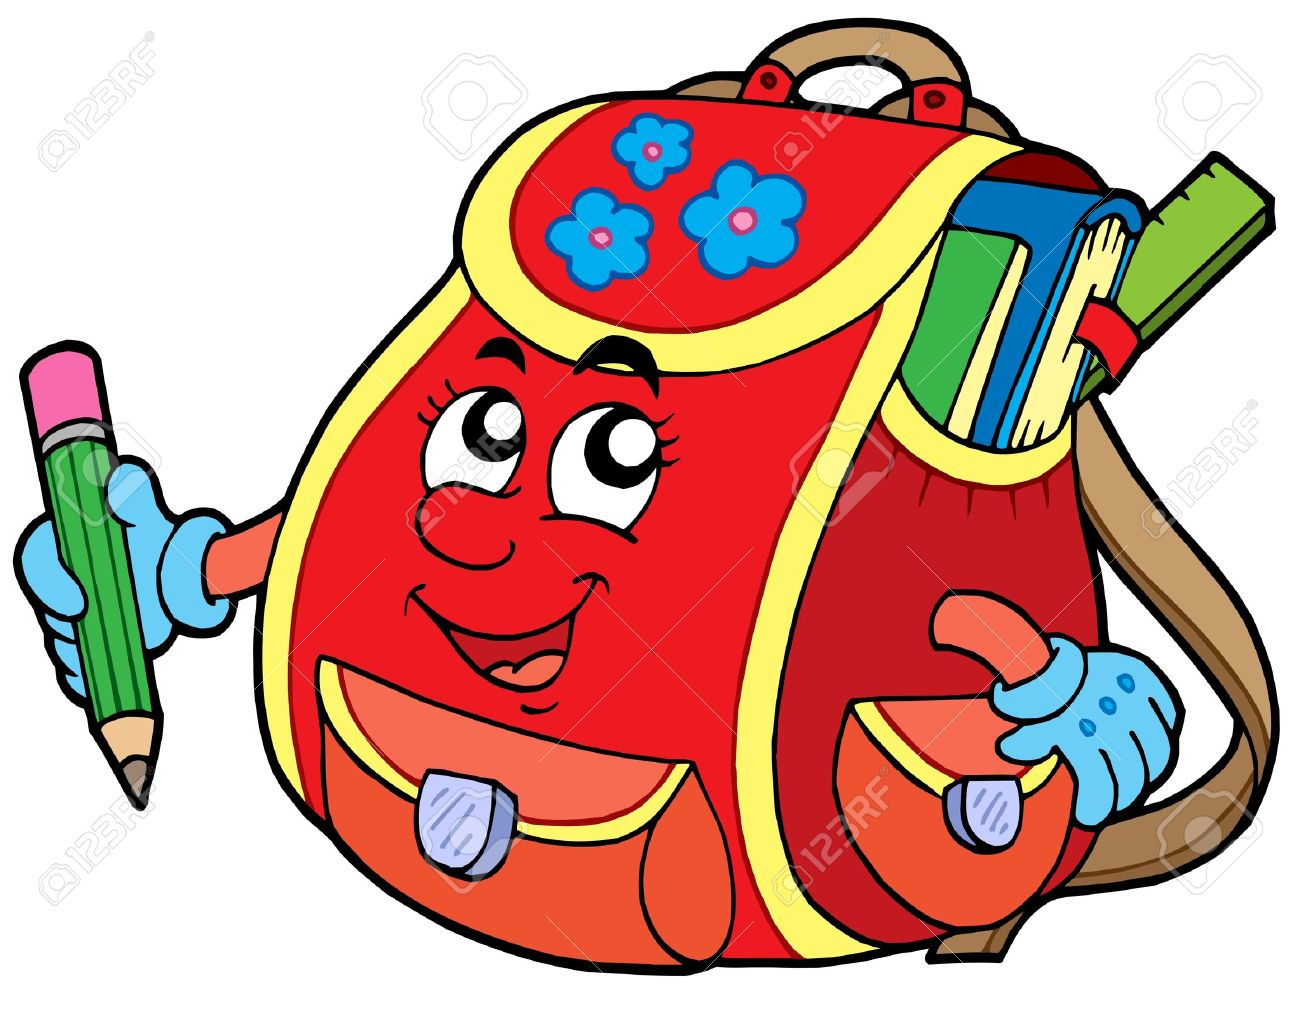 Schoolbag clipart - Clipground